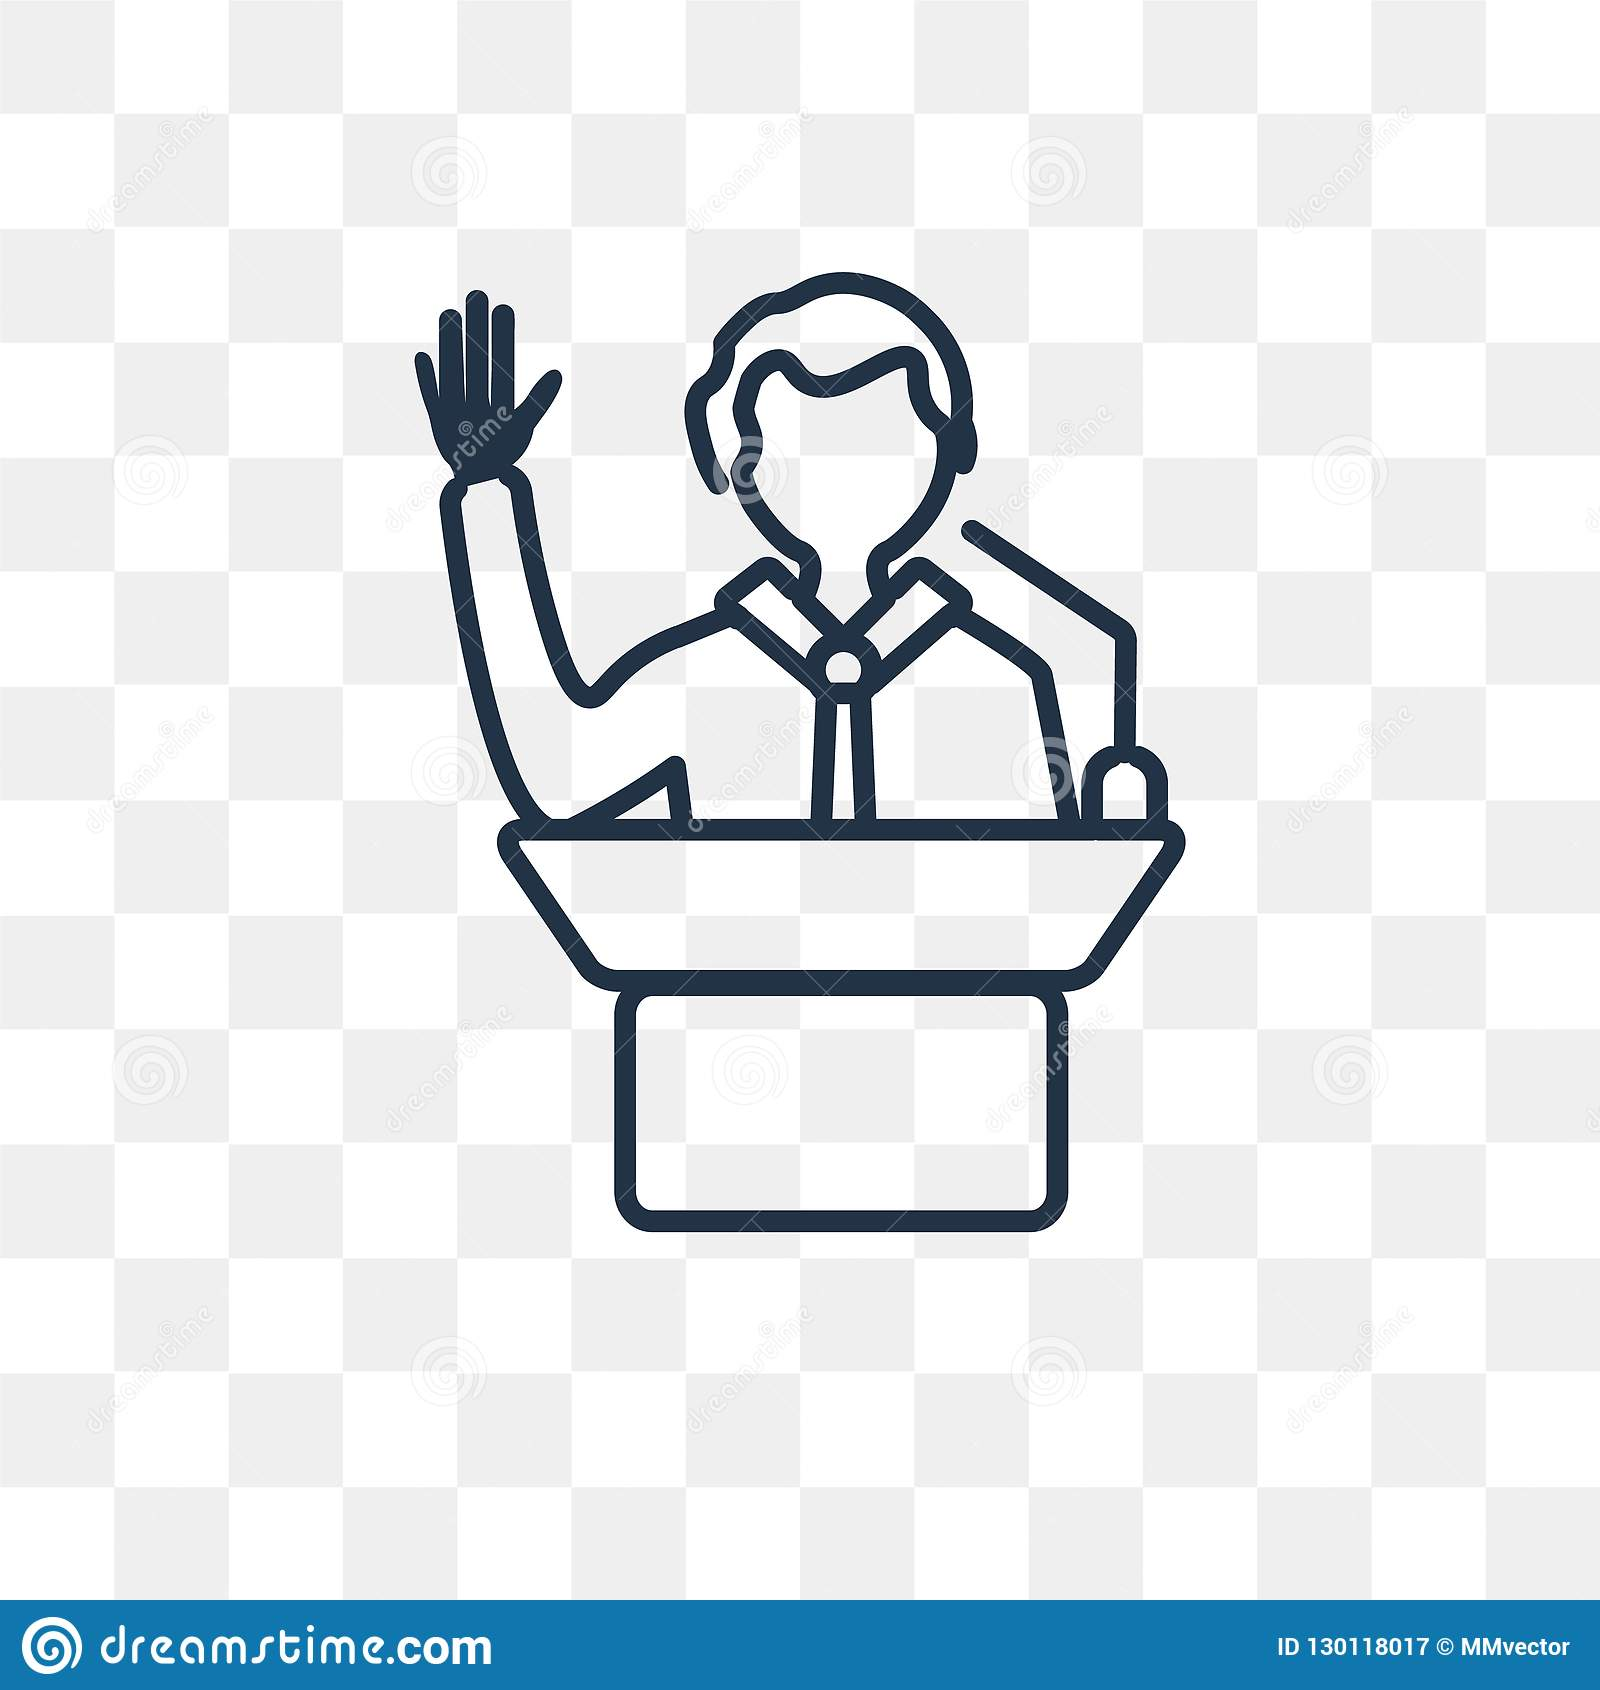 Leadership Vector Icon Isolated On Transparent Background Linear Leadership Transparency Concept Can Be Used Web And Mobile Stock Vector Illustration Of Leadership Person 130118017